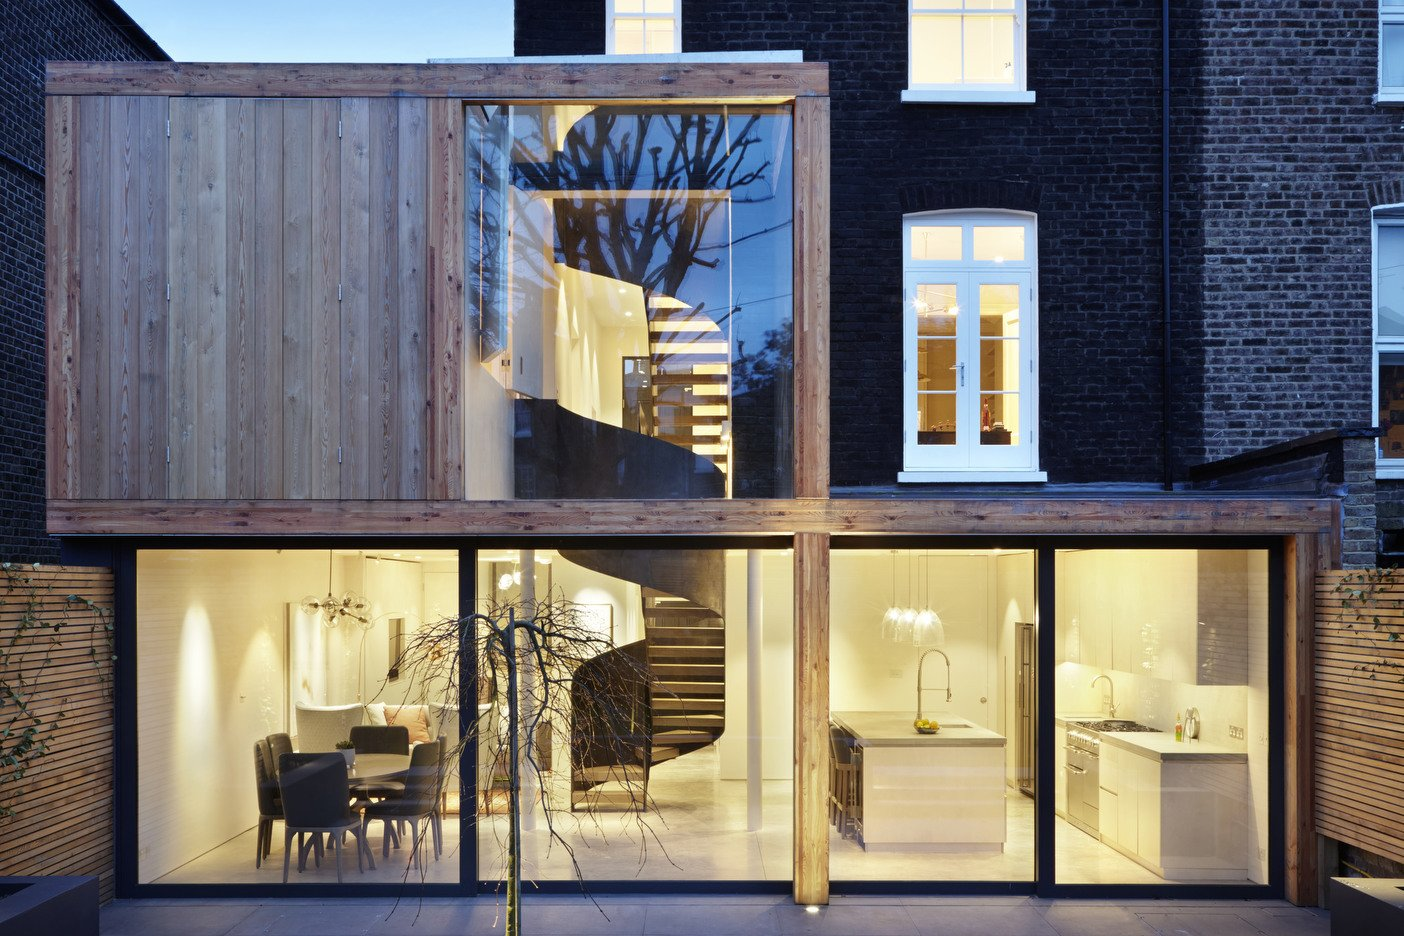 Architect: Cousins & Cousins Architects Contractor: Romark Projects Ltd Photography: Jack Hobhouse  De Beauvoir House